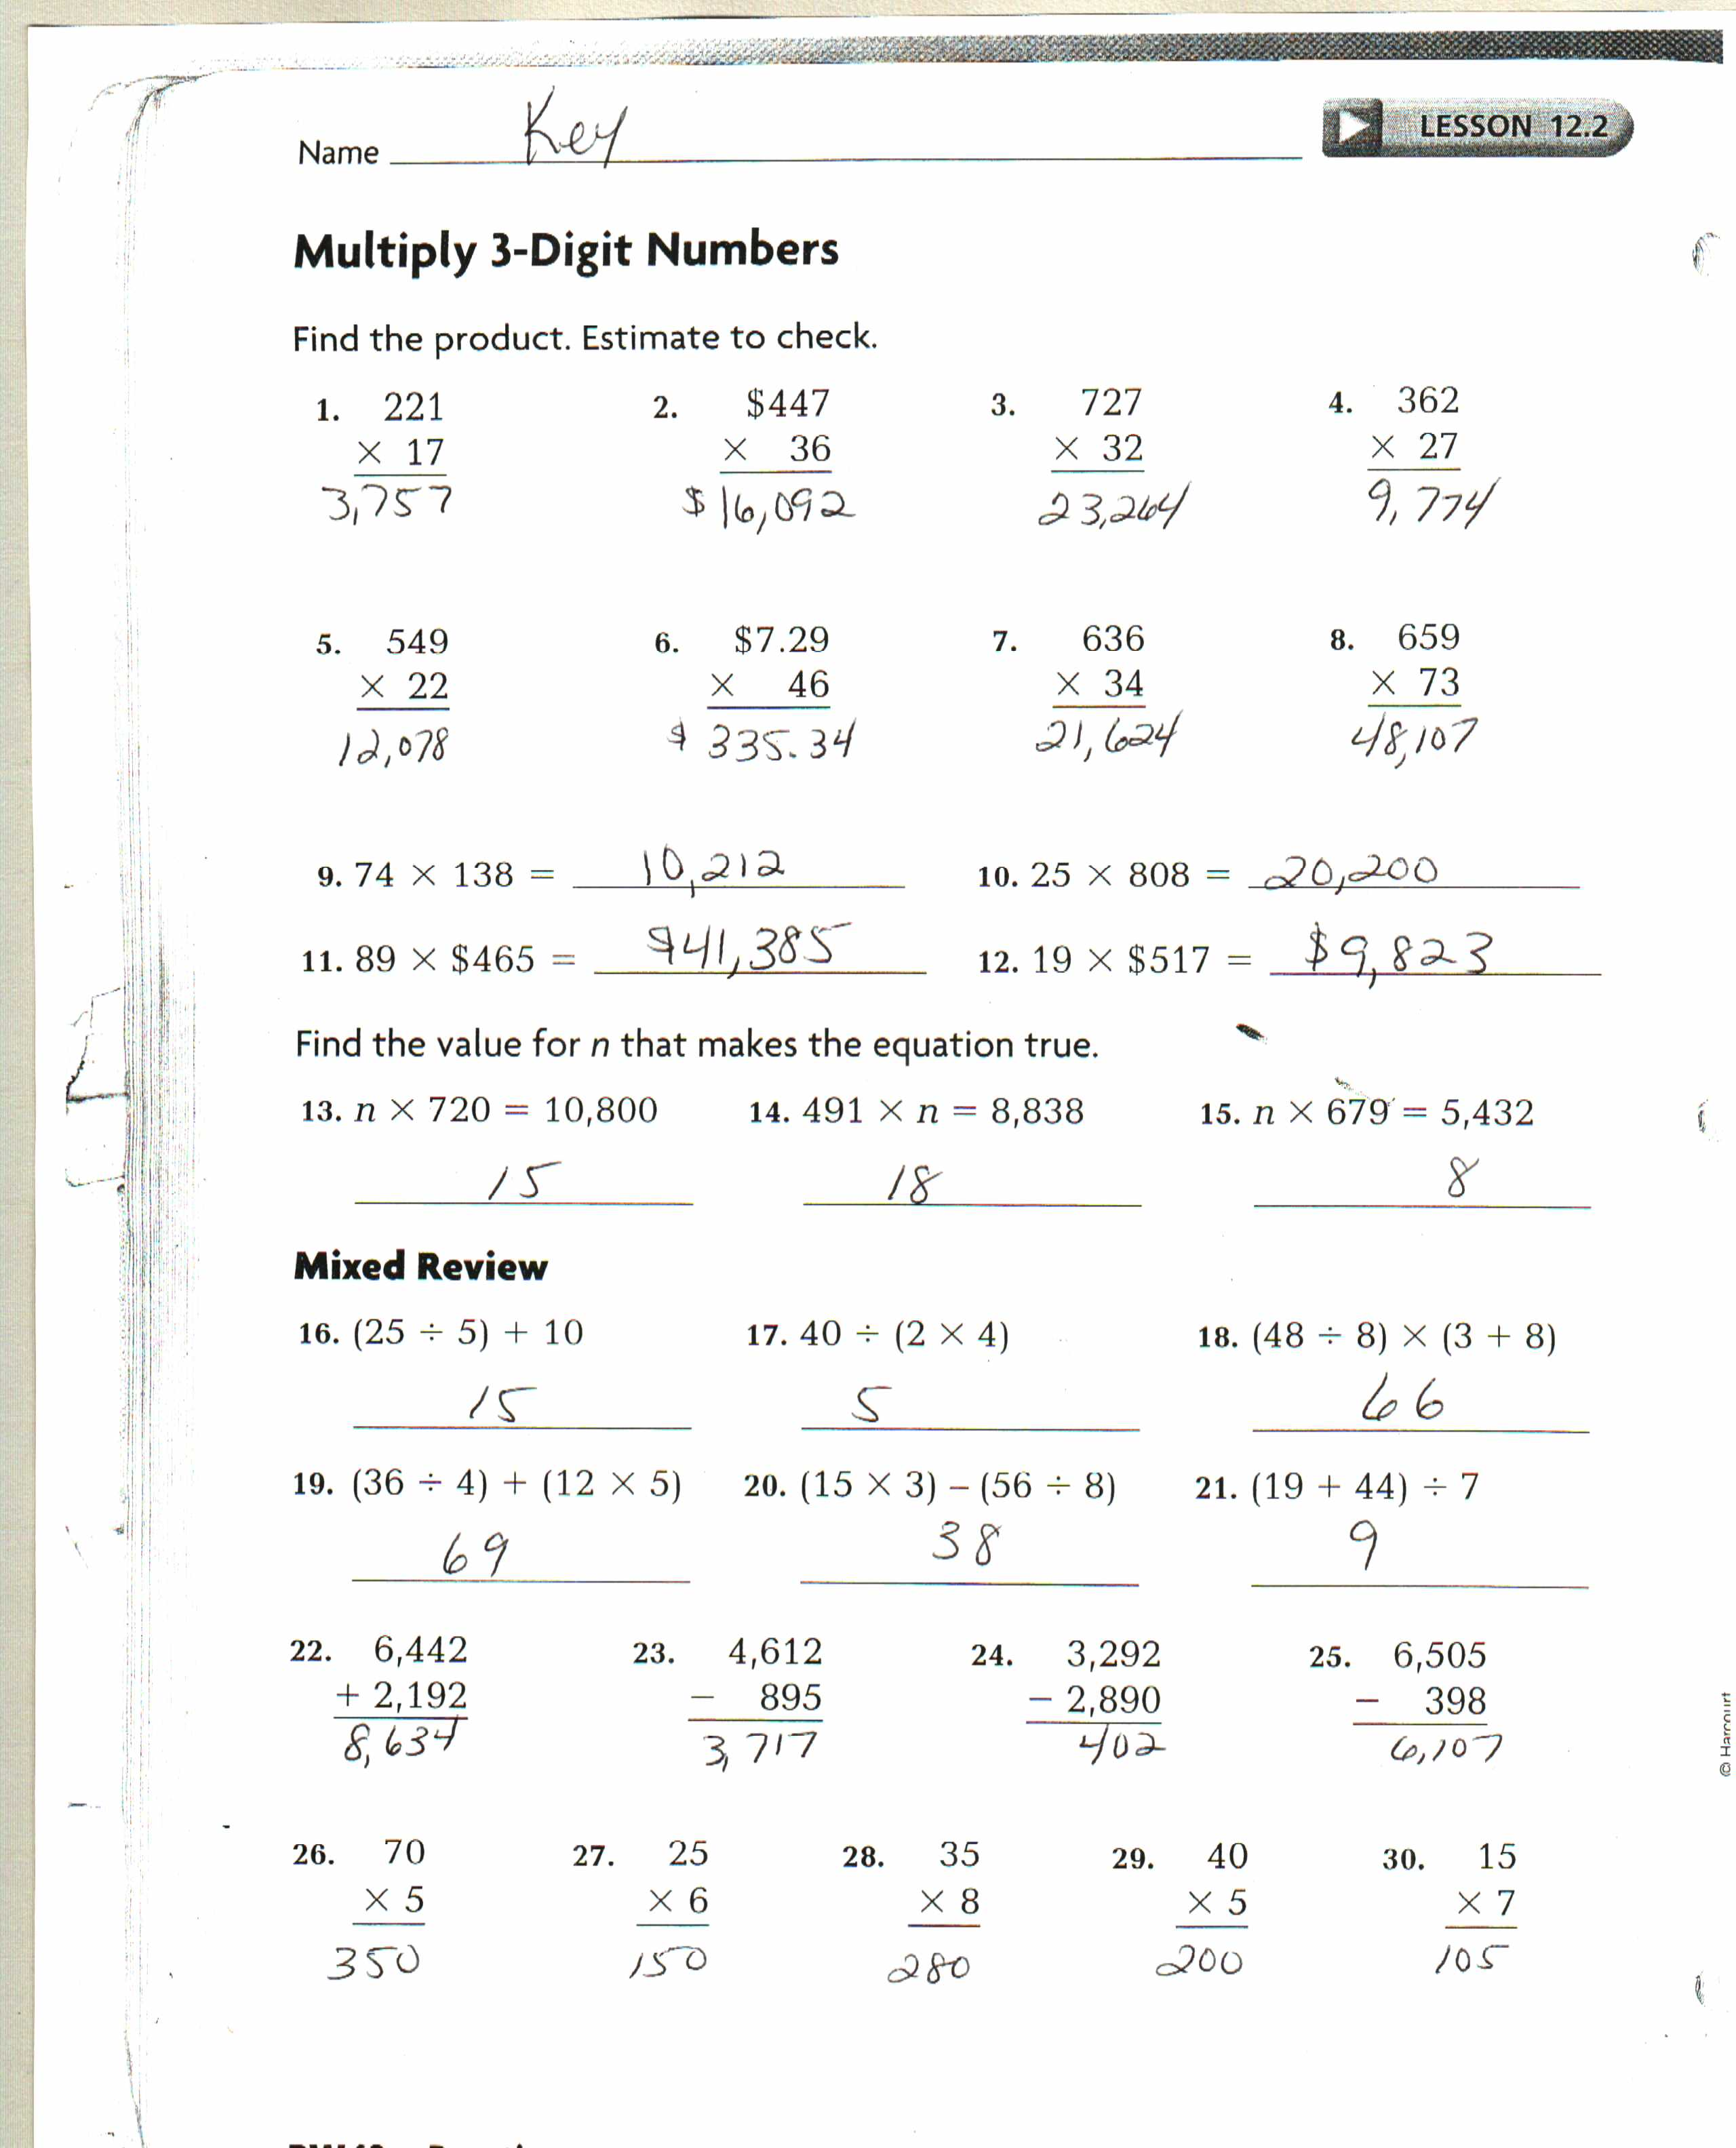 Worksheets Compatible Numbers Worksheet compatible numbers multiplication worksheet images guru imag worksheet